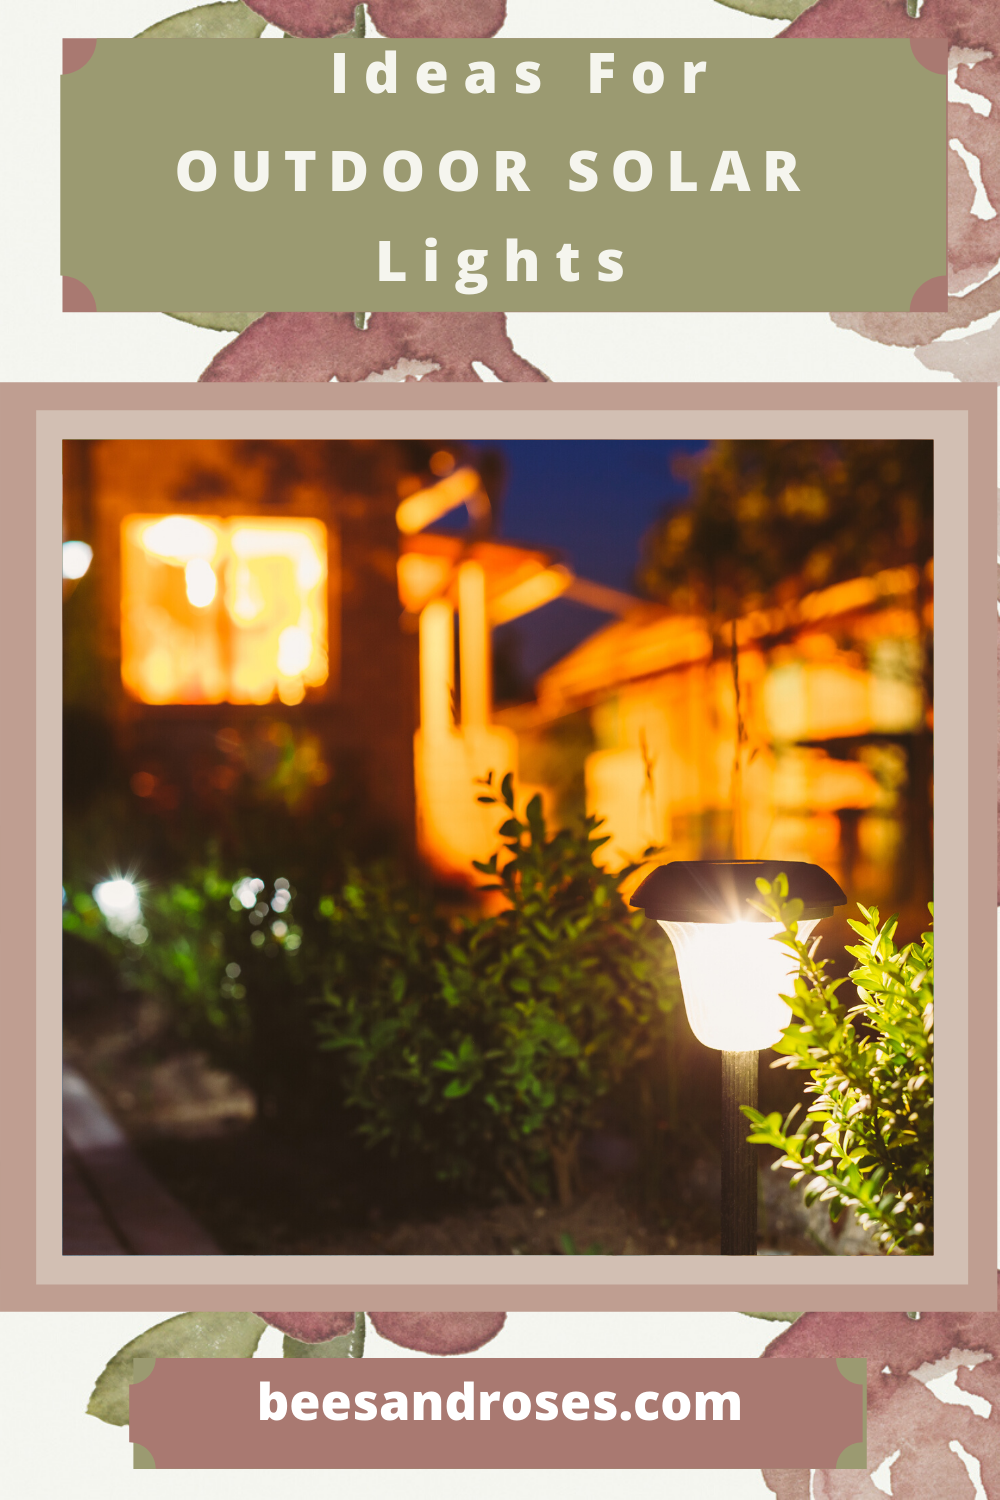 The sun is pretty powerful and can help you save money while lighting up your yard. Ever thought of using outdoor solar lights? They are great for decks and patios, and make walkways safe at night. Read the post to learn more about them and how you can use them in your yard. #solarlights #outdoorlivingideas #landscapideas